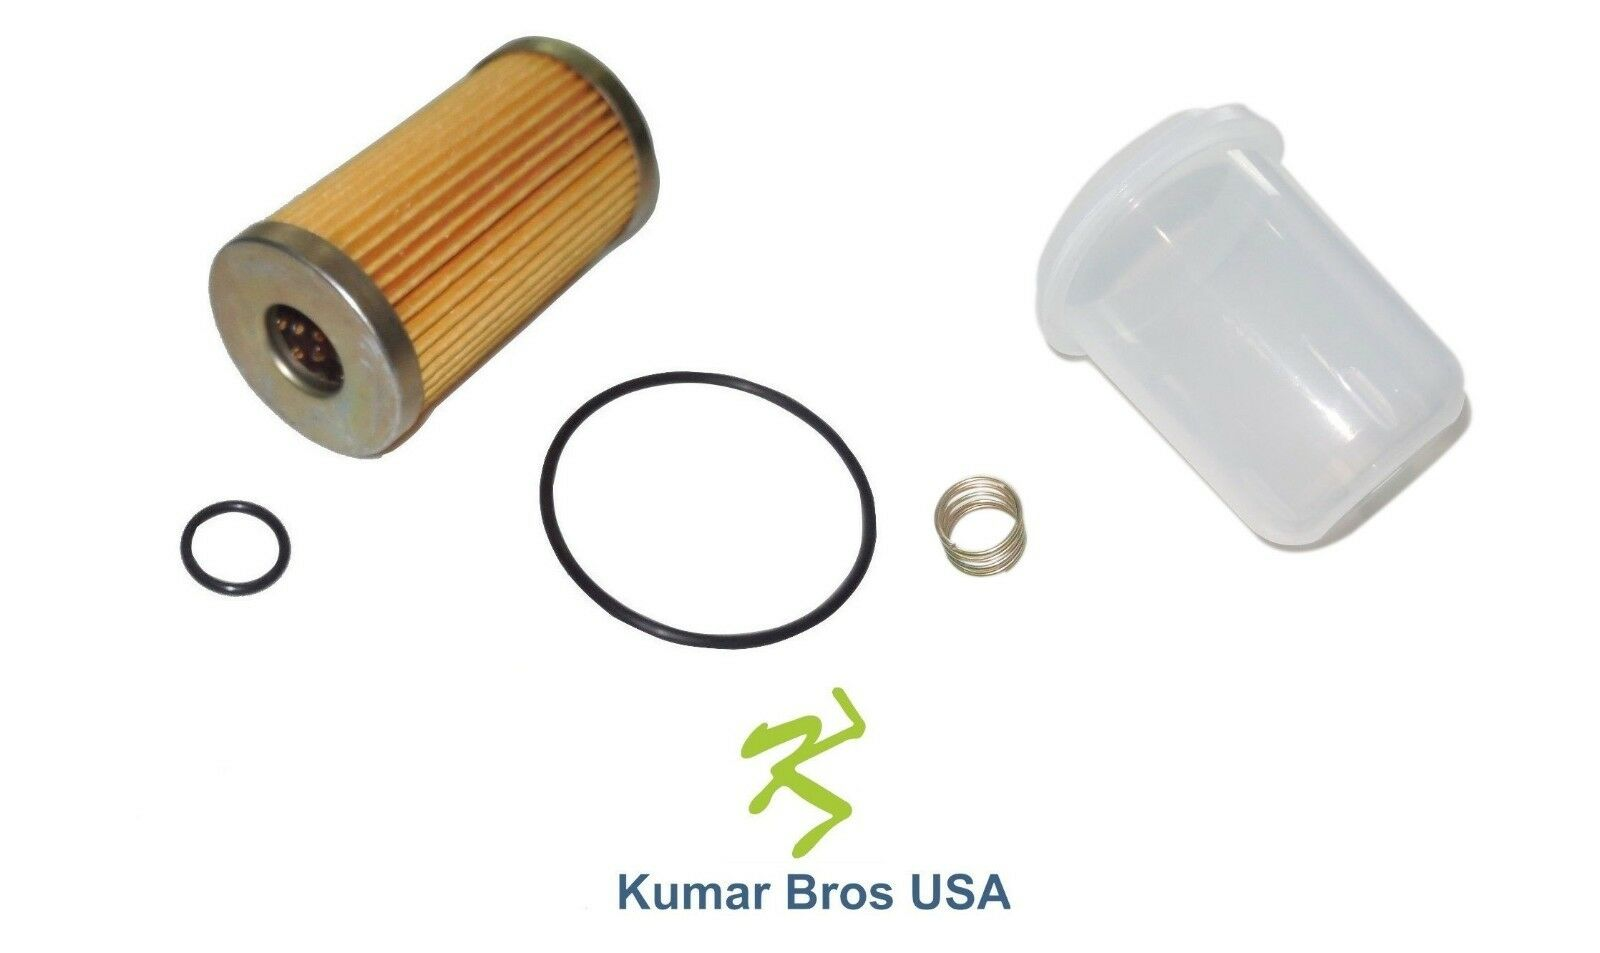 New Ford Holland Fuel Filter Bowl Spring 1900 1910 1920 2110 Deutz Filters 1 Of 1free Shipping